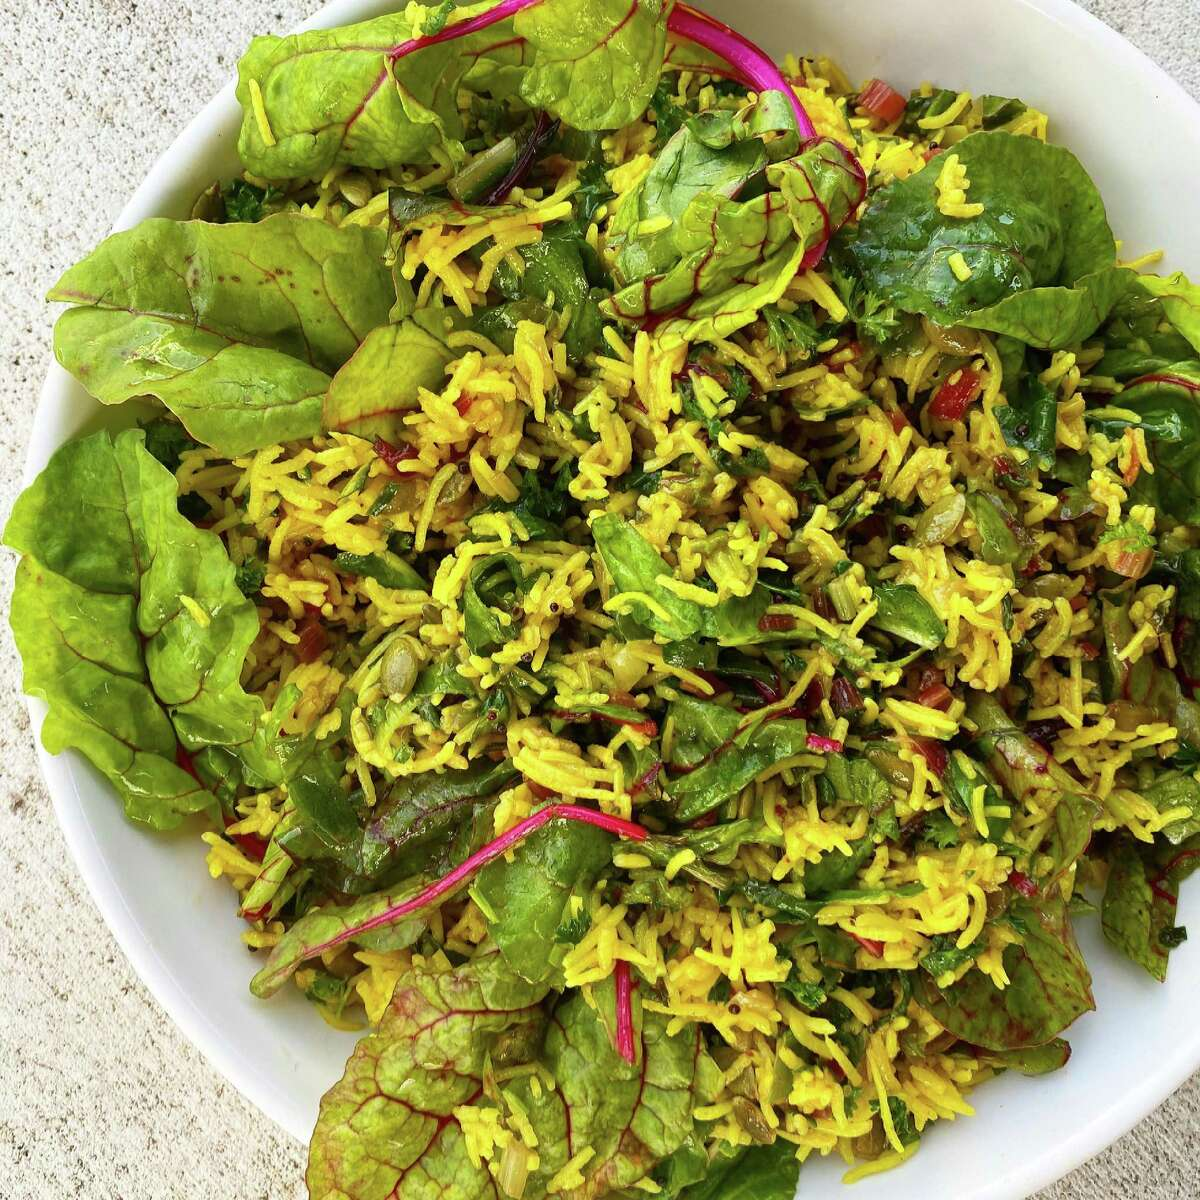 Swiss chard pilaf is a good way to incorporate chard in one's diet.